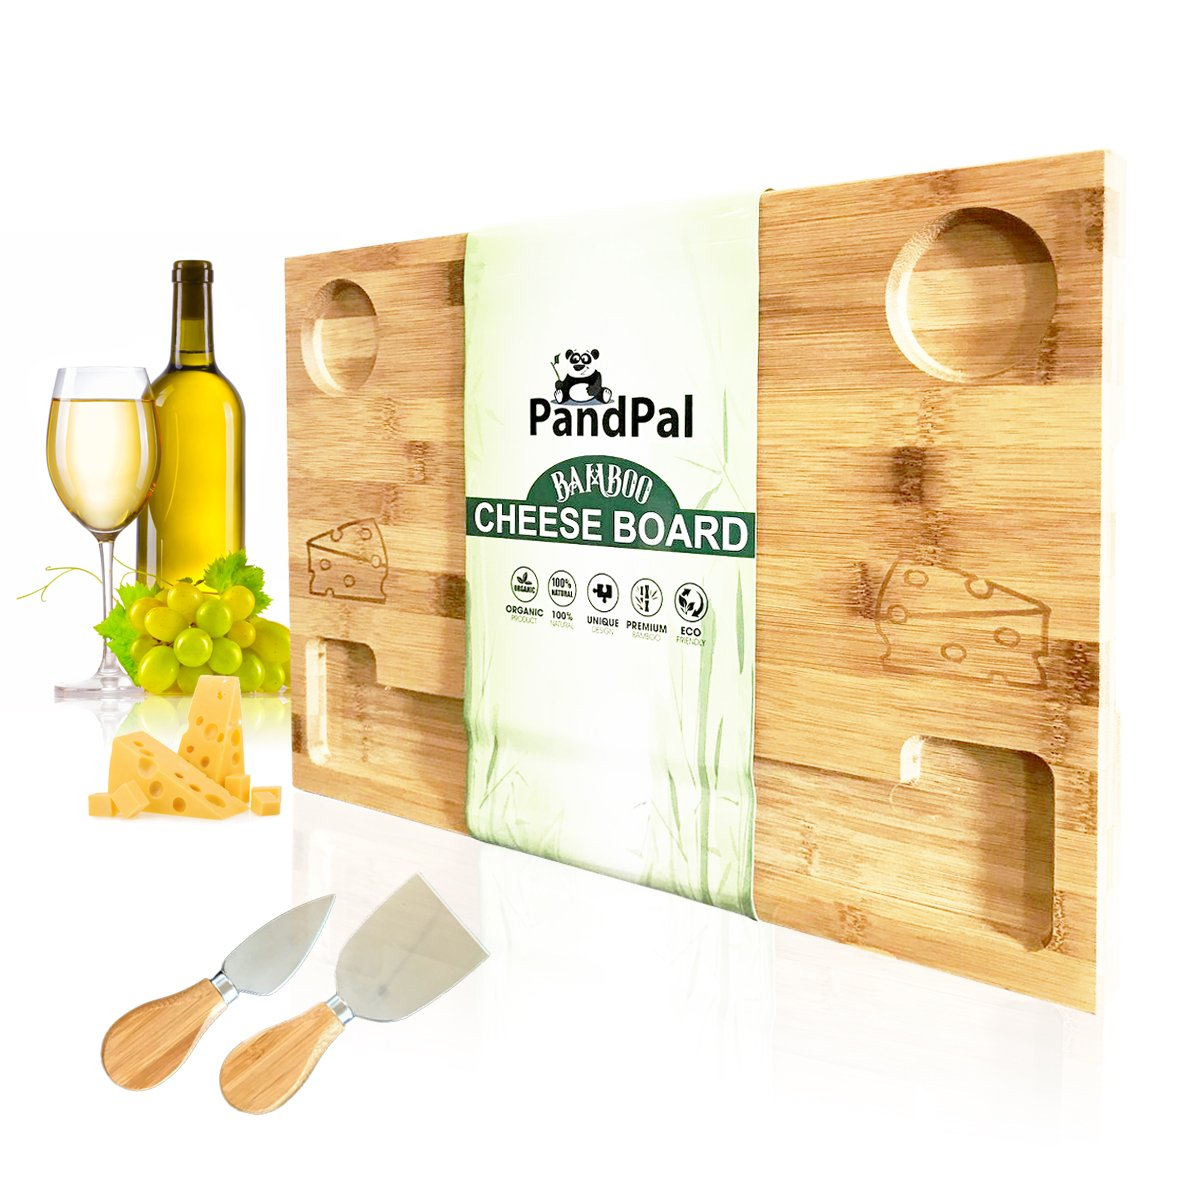 Cheesy Smile Bamboo Cheese Board Serving Tray - Bonus Stainless Steel Knives, EXTRA LARGE [16x11x1] Wooden Cutting Board Charcuterie Platter for Wine, Cracker, Brie, Meat, Dip, Chip by PandPal by PandPal (Image #1)